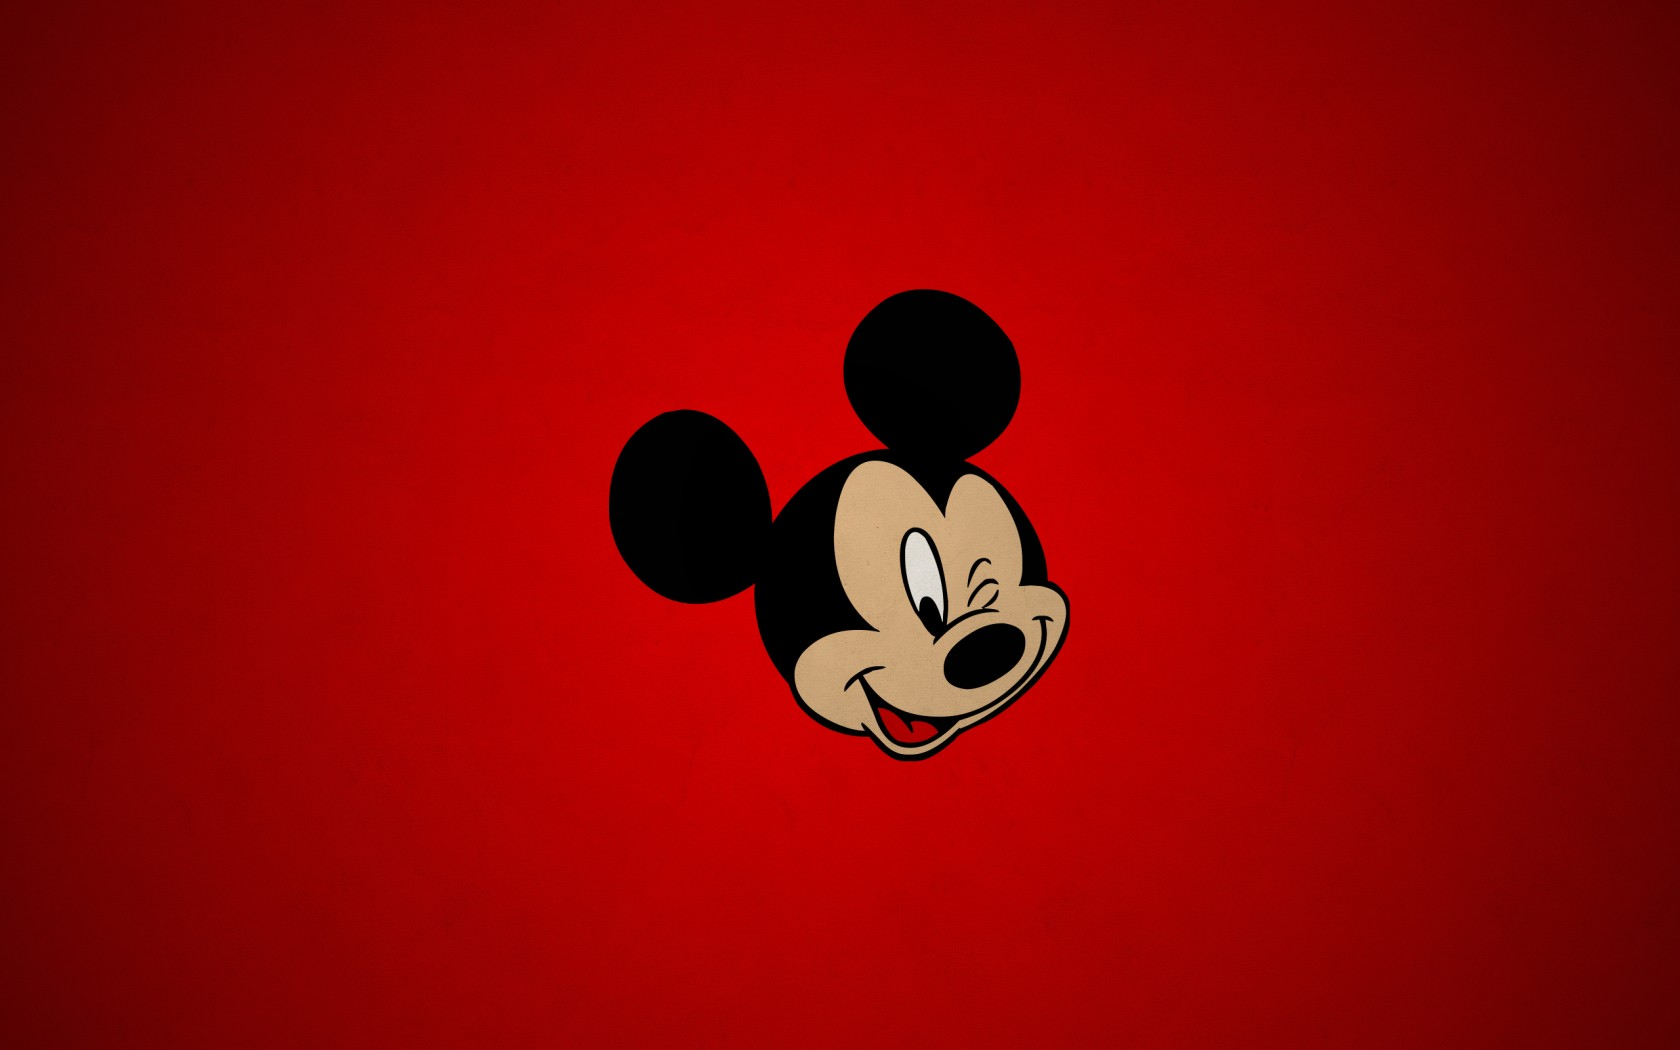 Wallpaper iphone minnie mouse - Wallpapers Mickey And Minnie Mouse 50 Wallpapers Adorable Wallpapers